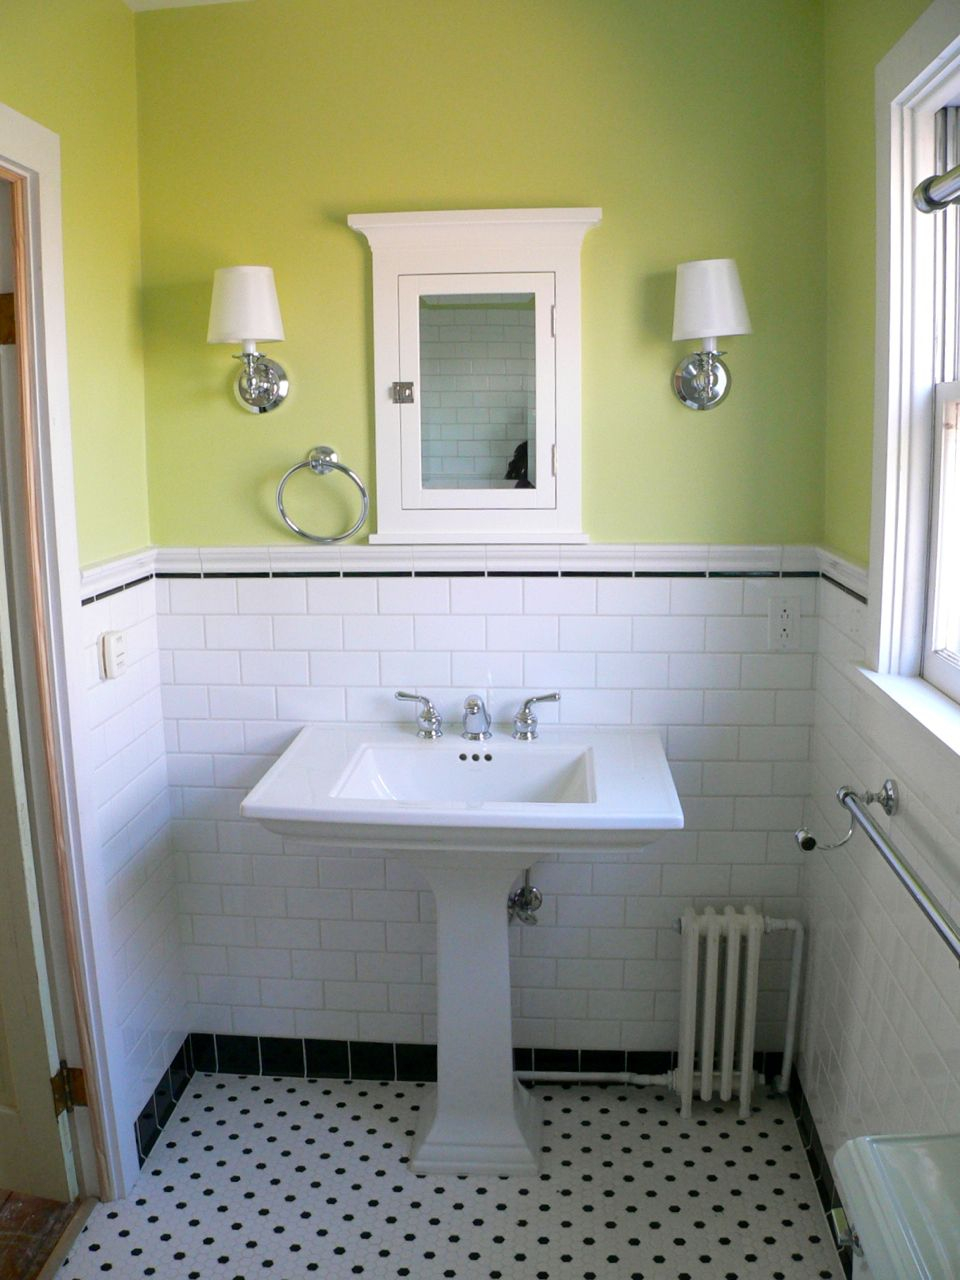 Modular Bathroom Sink : Farmhouse Bathroom Sink Farmhouse Style Bathroom for Good quality Bathroom Farm Sink Vanity